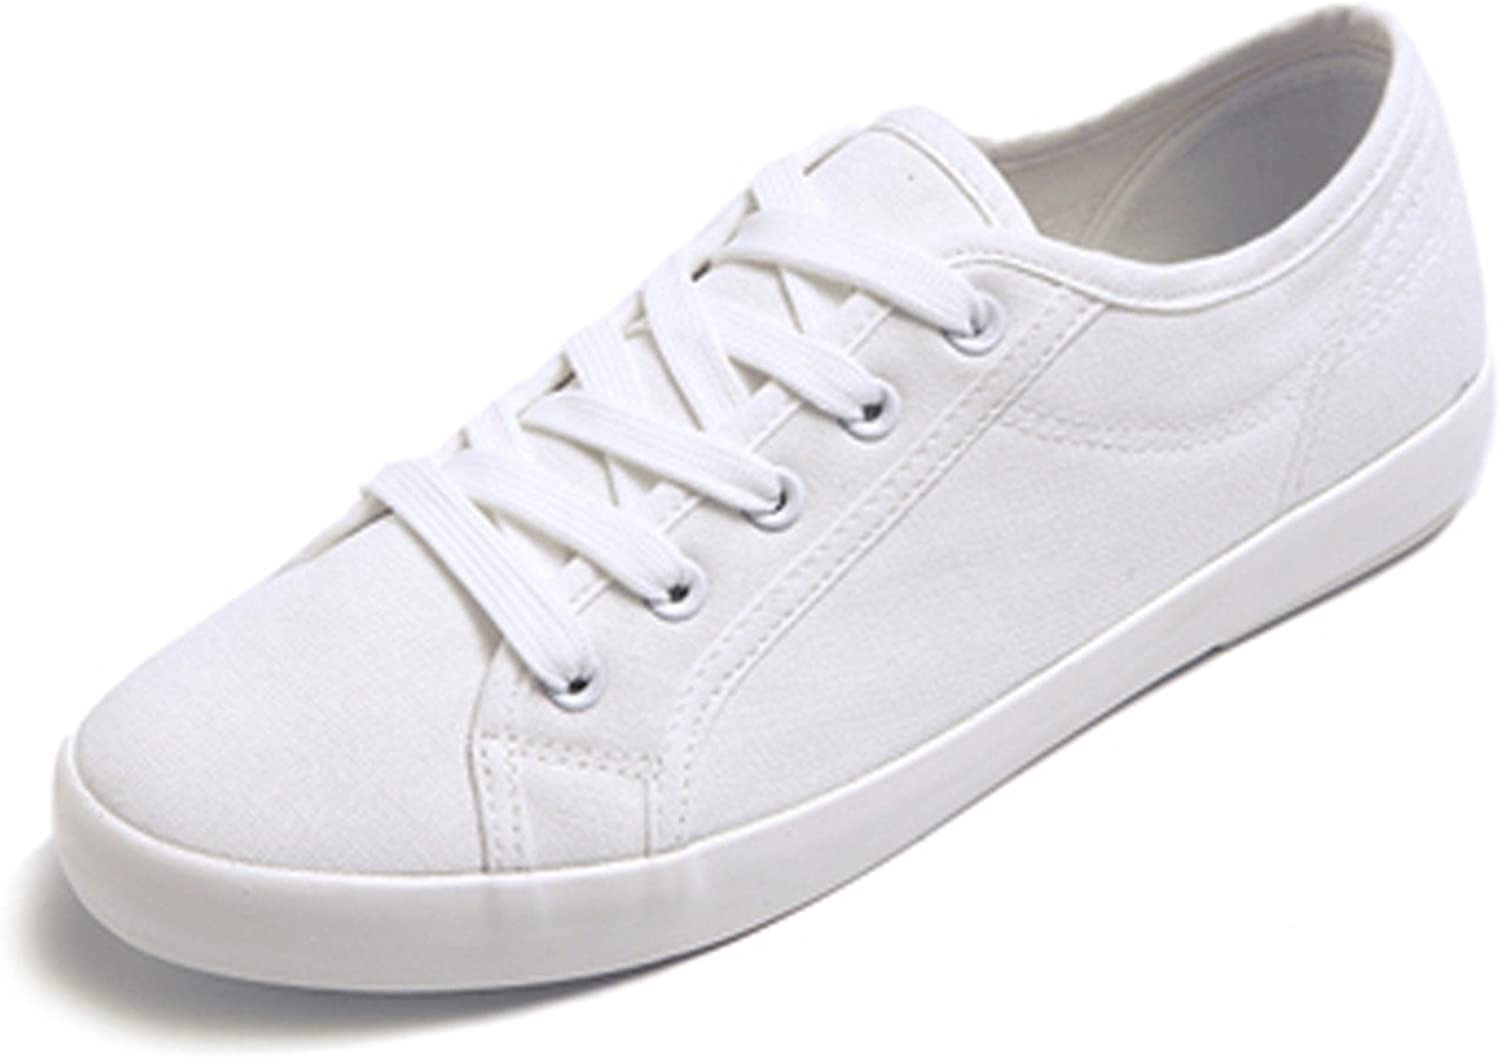 Better Annie Fashion Women White Canvas shoes Low Top Casual Flat Student shoes Lace Up Solid Canvas Women shoes